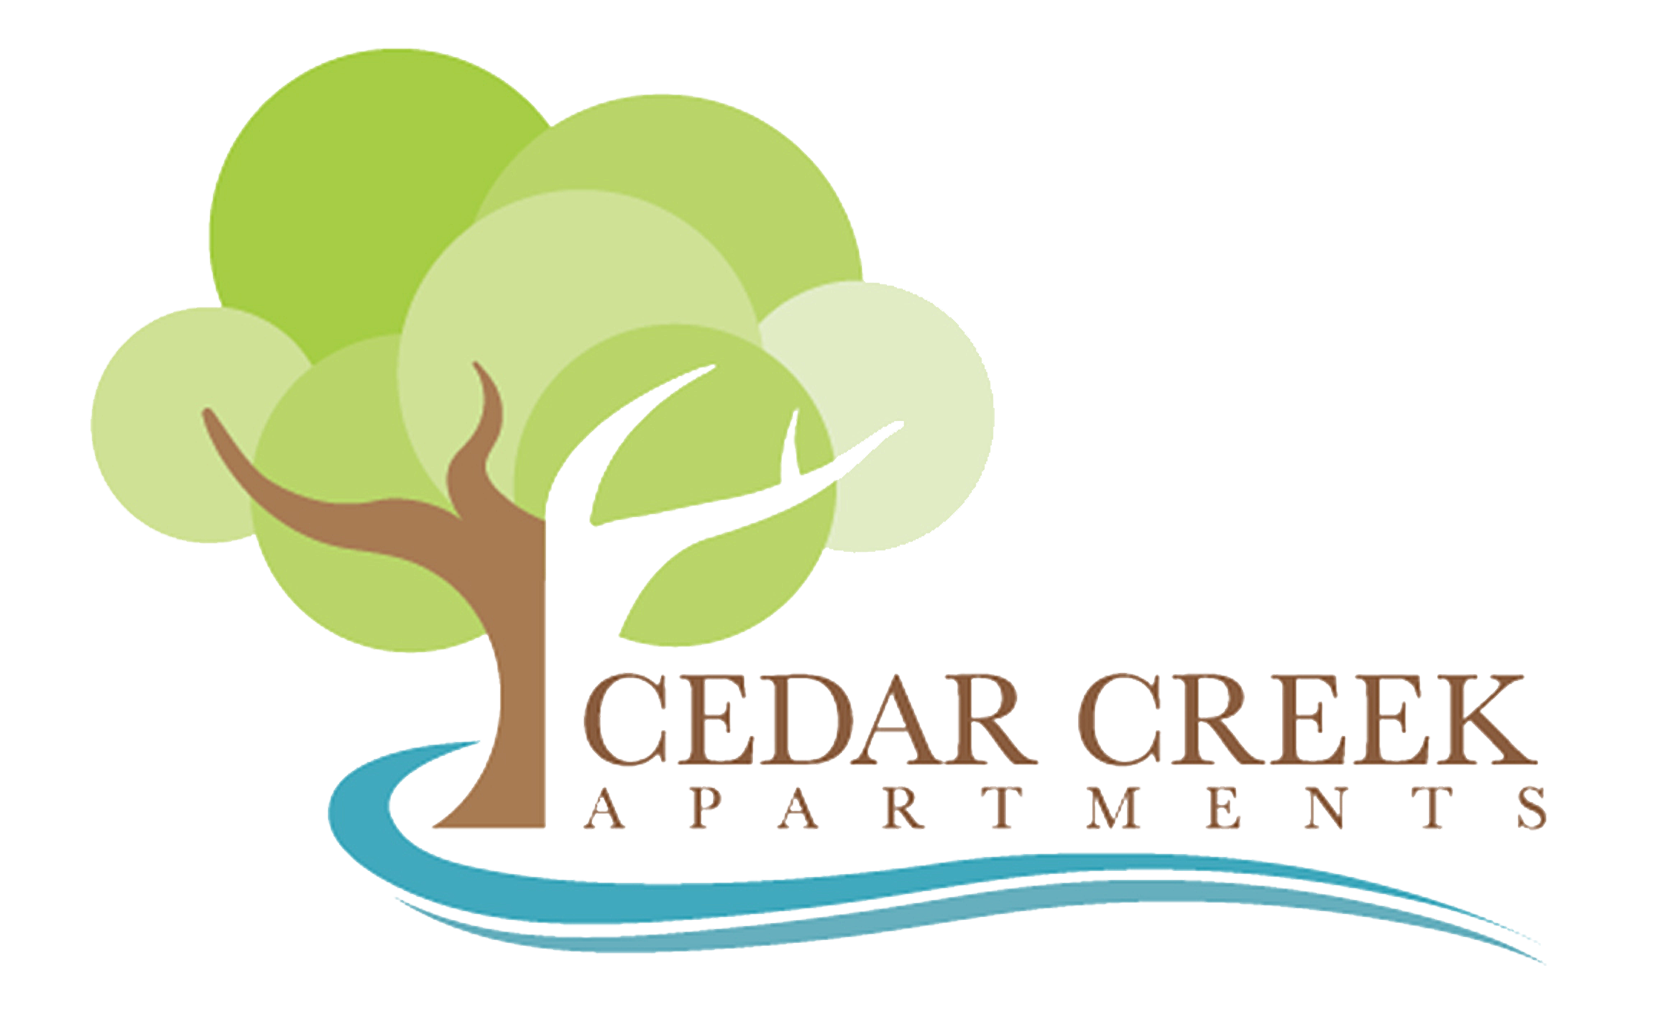 Cedar Creek Apartments